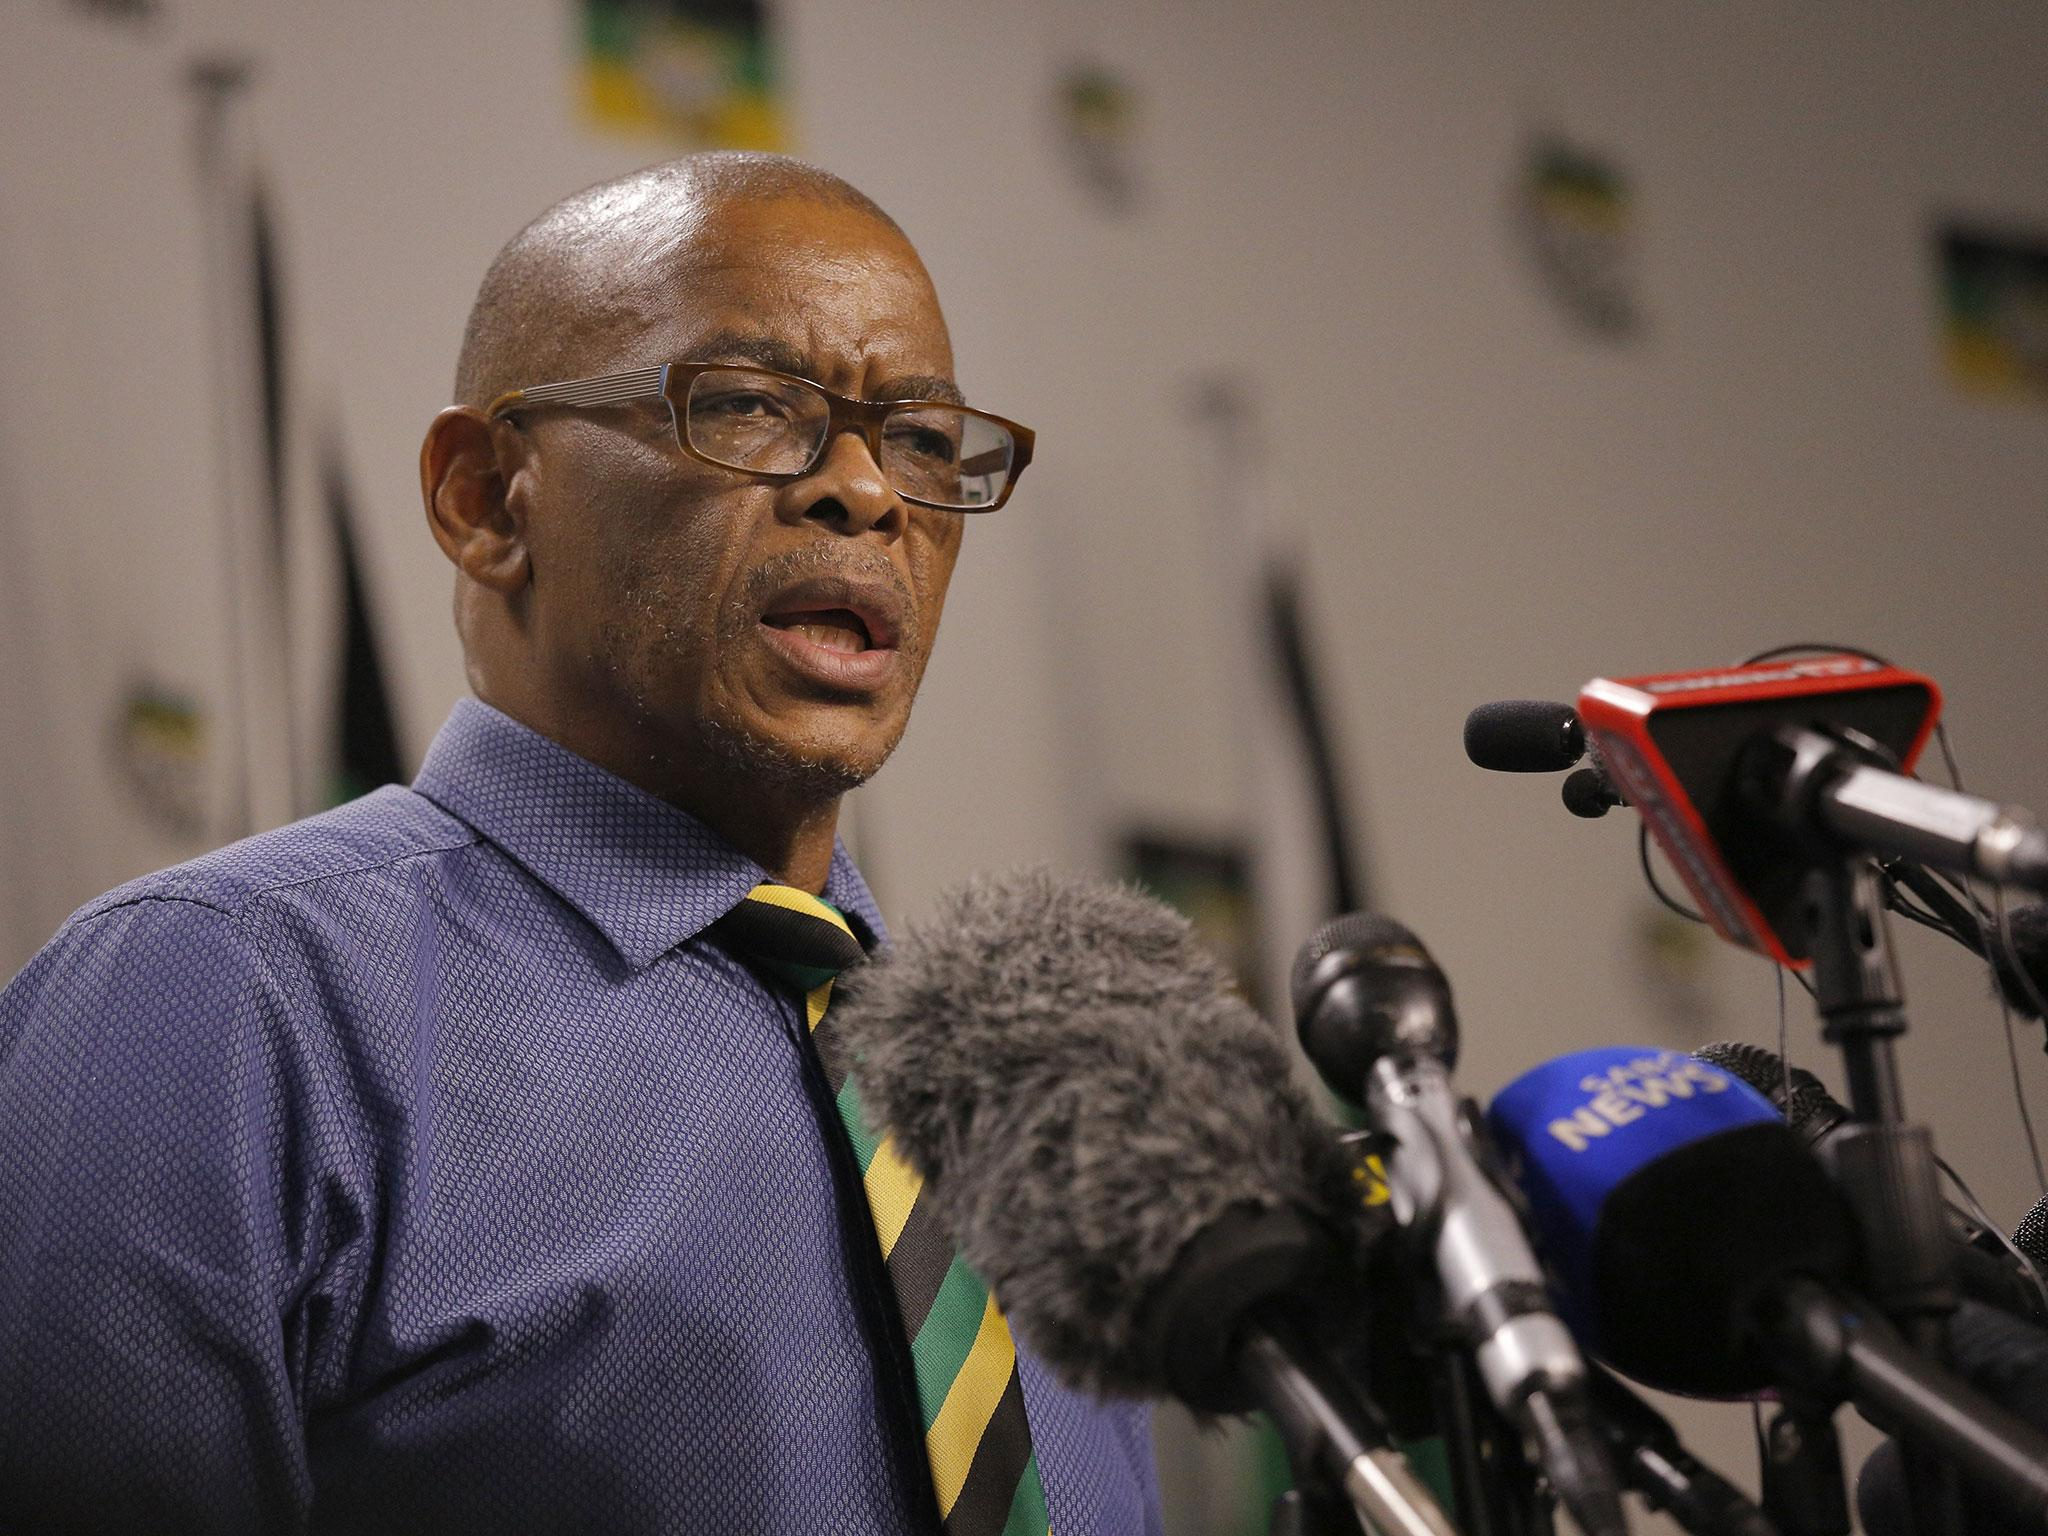 Magashule on Zuma: He is one of the best leaders ever produced by the ANC